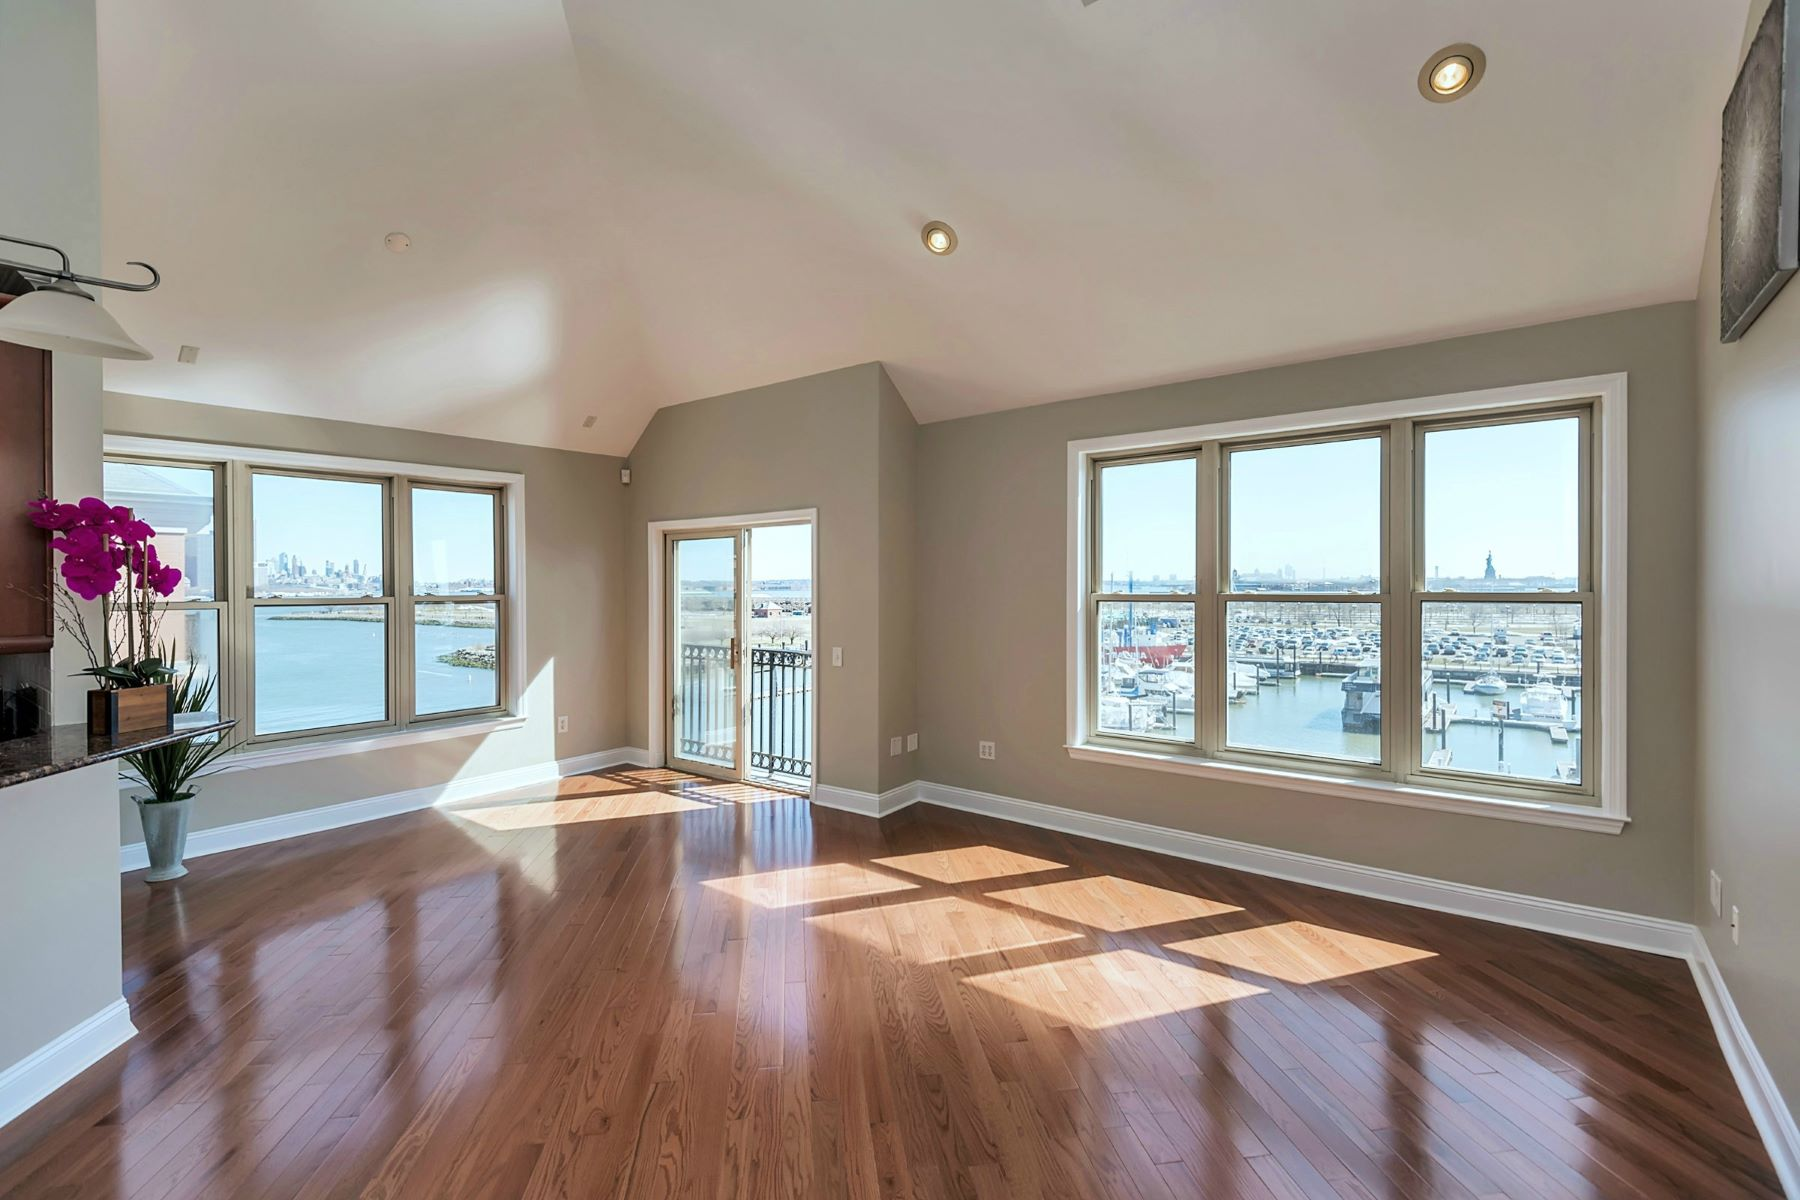 Duplex for Sale at Sun-drenched, South-East facing duplex 15 Warren St #417 #417 Jersey City, 07302 United States